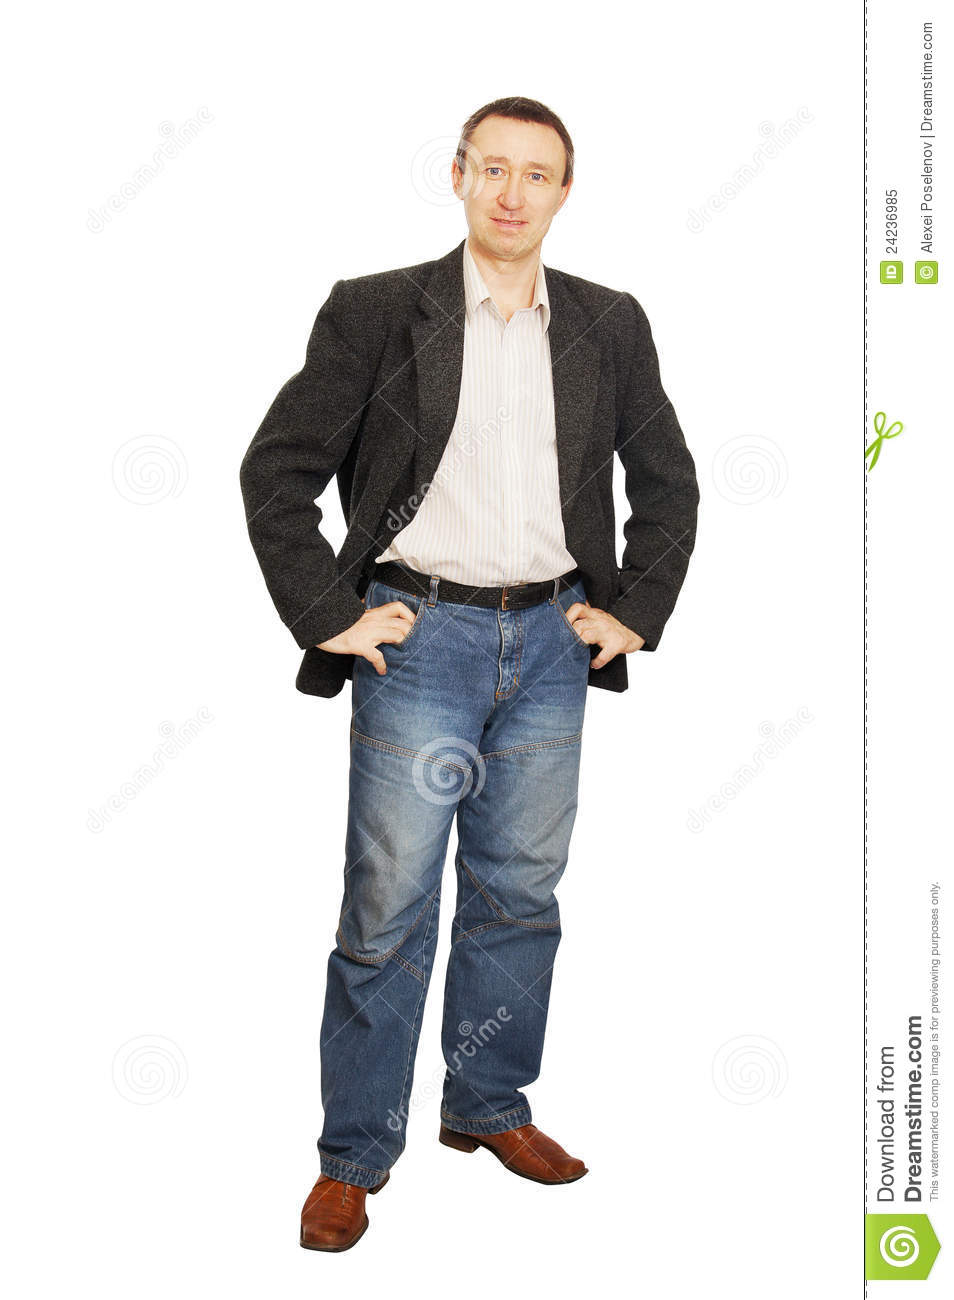 Man In A Jacket And Jeans Royalty Free Stock Photo - Image: 24236985